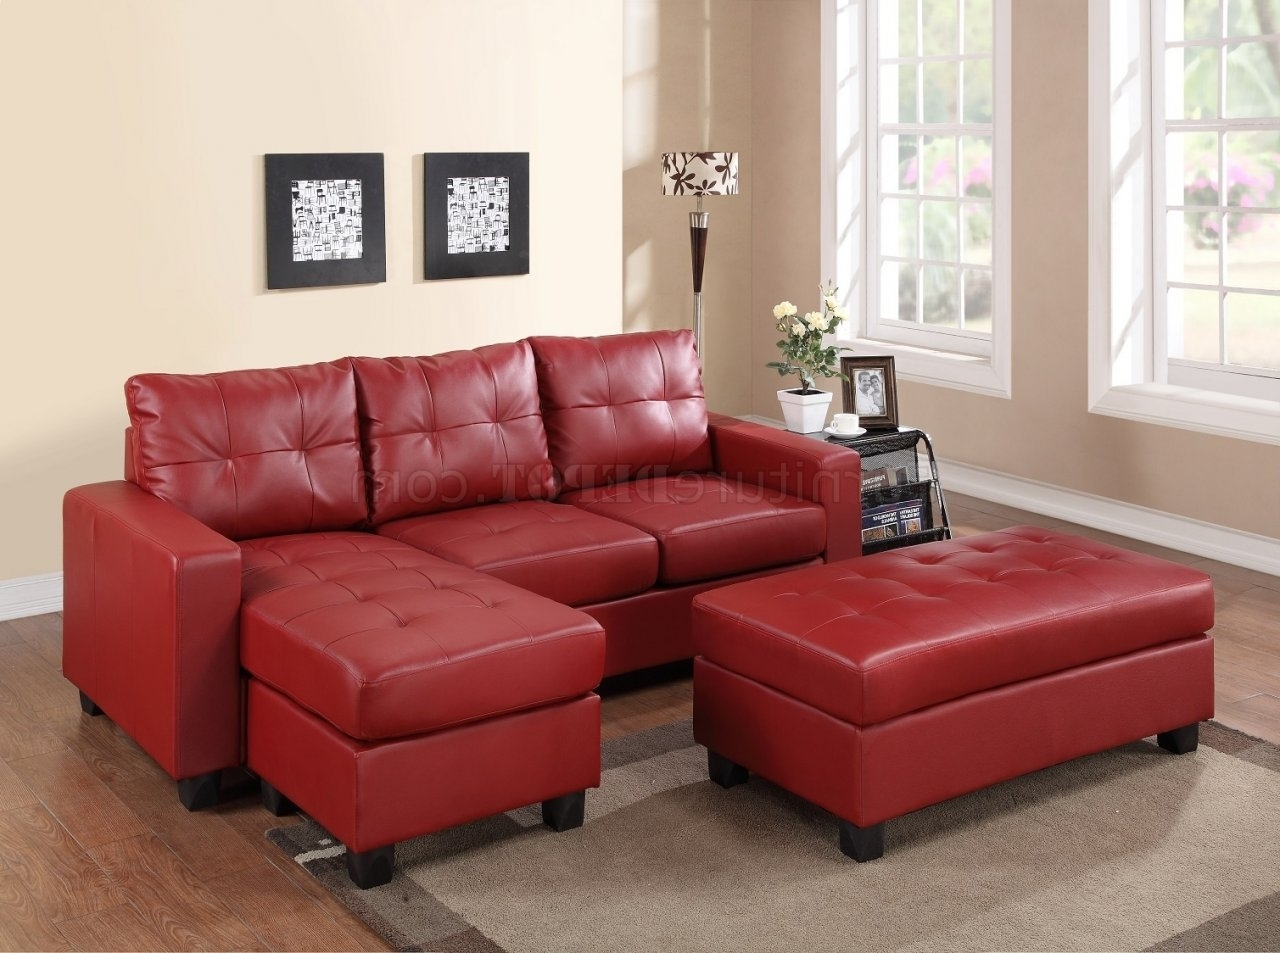 2511 Sectional Sofa Set In Red Bonded Leather Match Pu In Most Popular Red Sectional Sofas With Chaise (View 2 of 15)